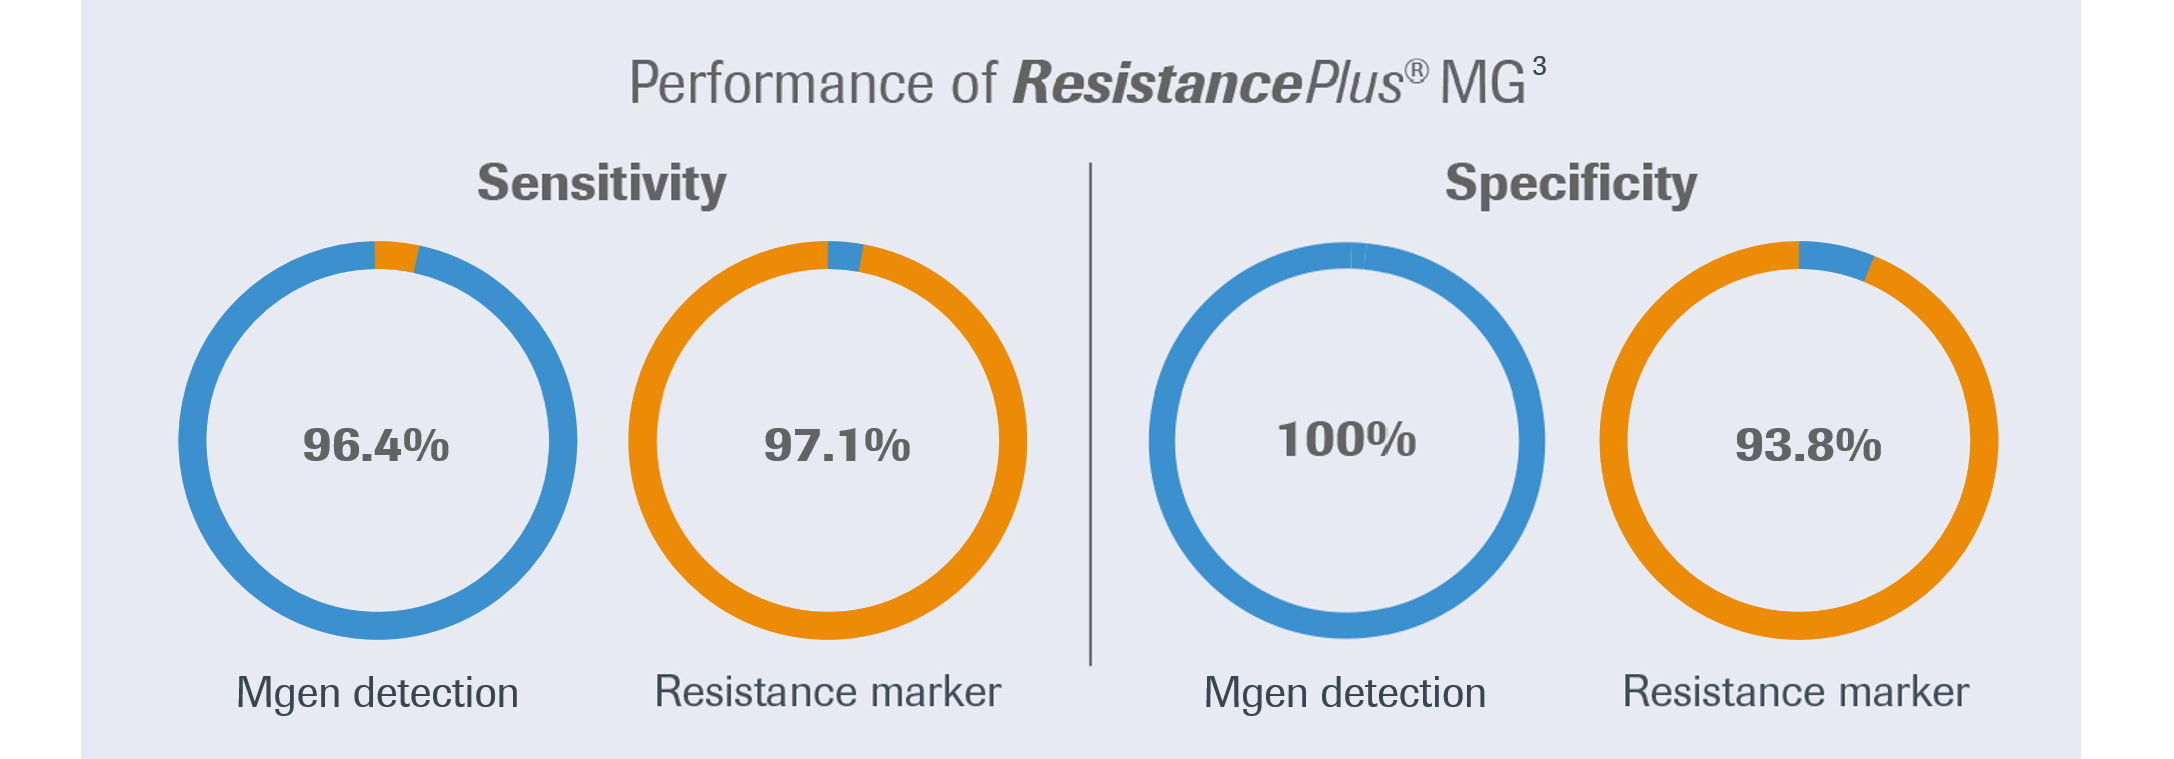 ResistancePlus® MG sensitivity and specificity performance diagram